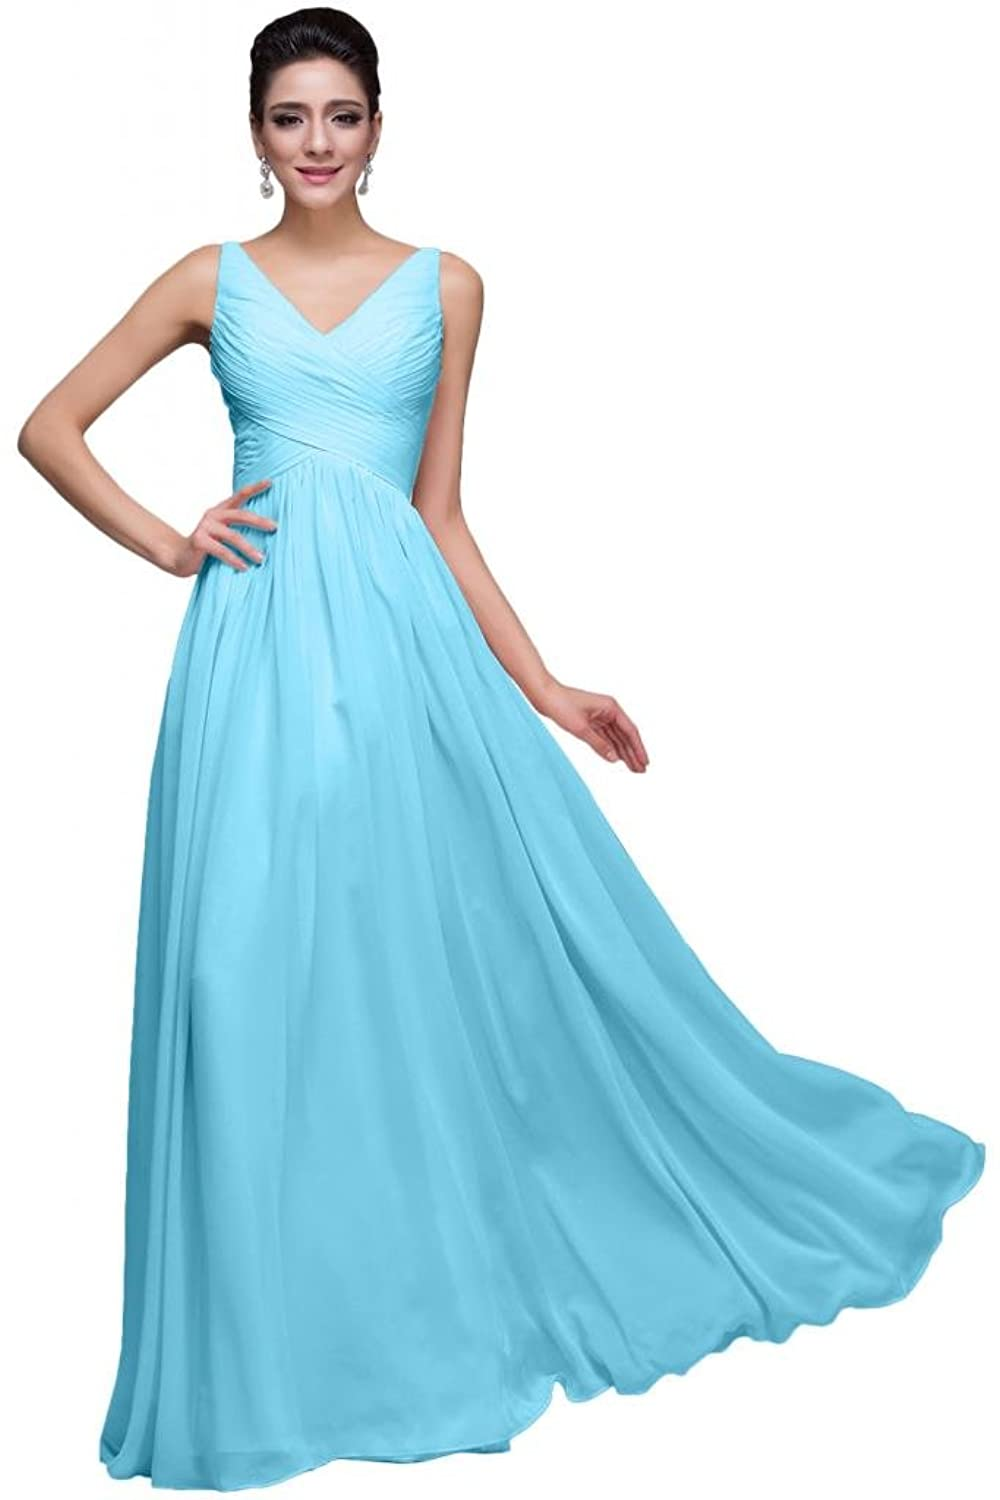 Sunvary Romantic Ruffled Chiffon Spaghetti Strap Bridesmaid Prom Dresses